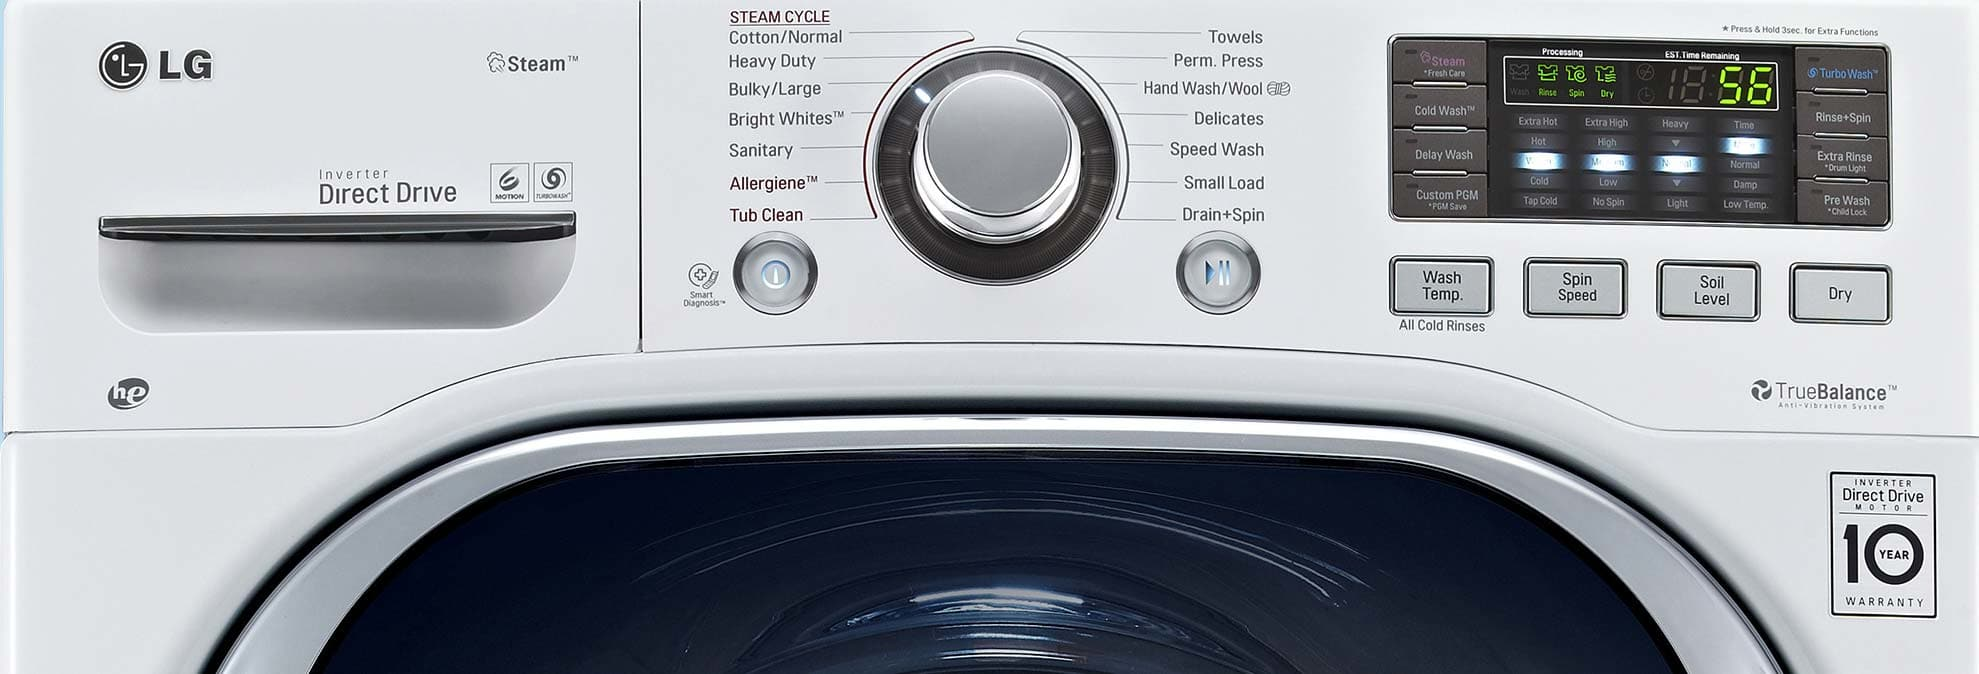 Lg all in one washer and dryer reviews - Lg All In One Washer And Dryer Reviews 26